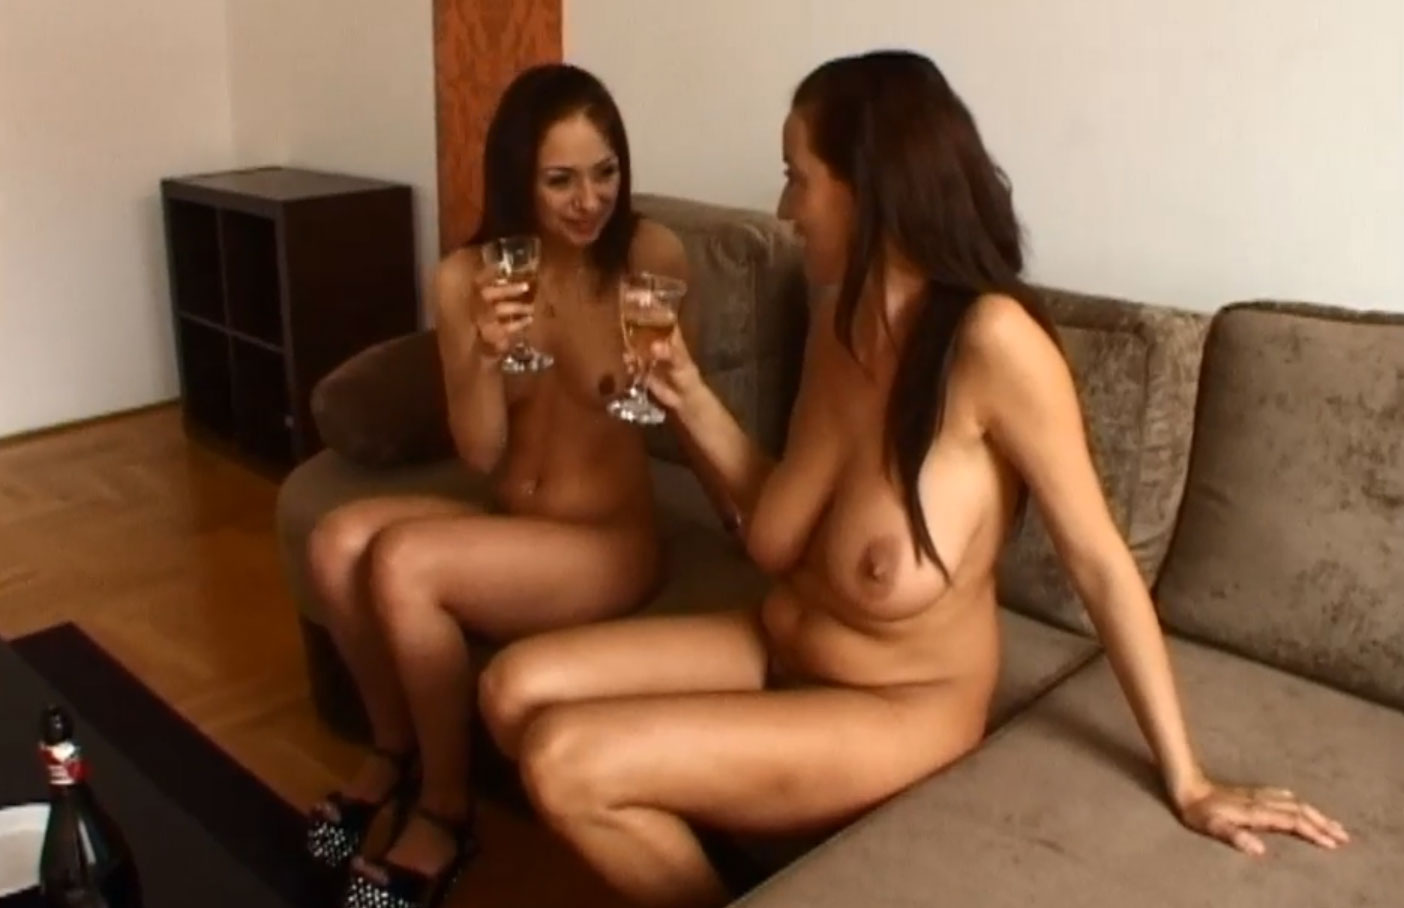 Two Naked friends drinking champagne together